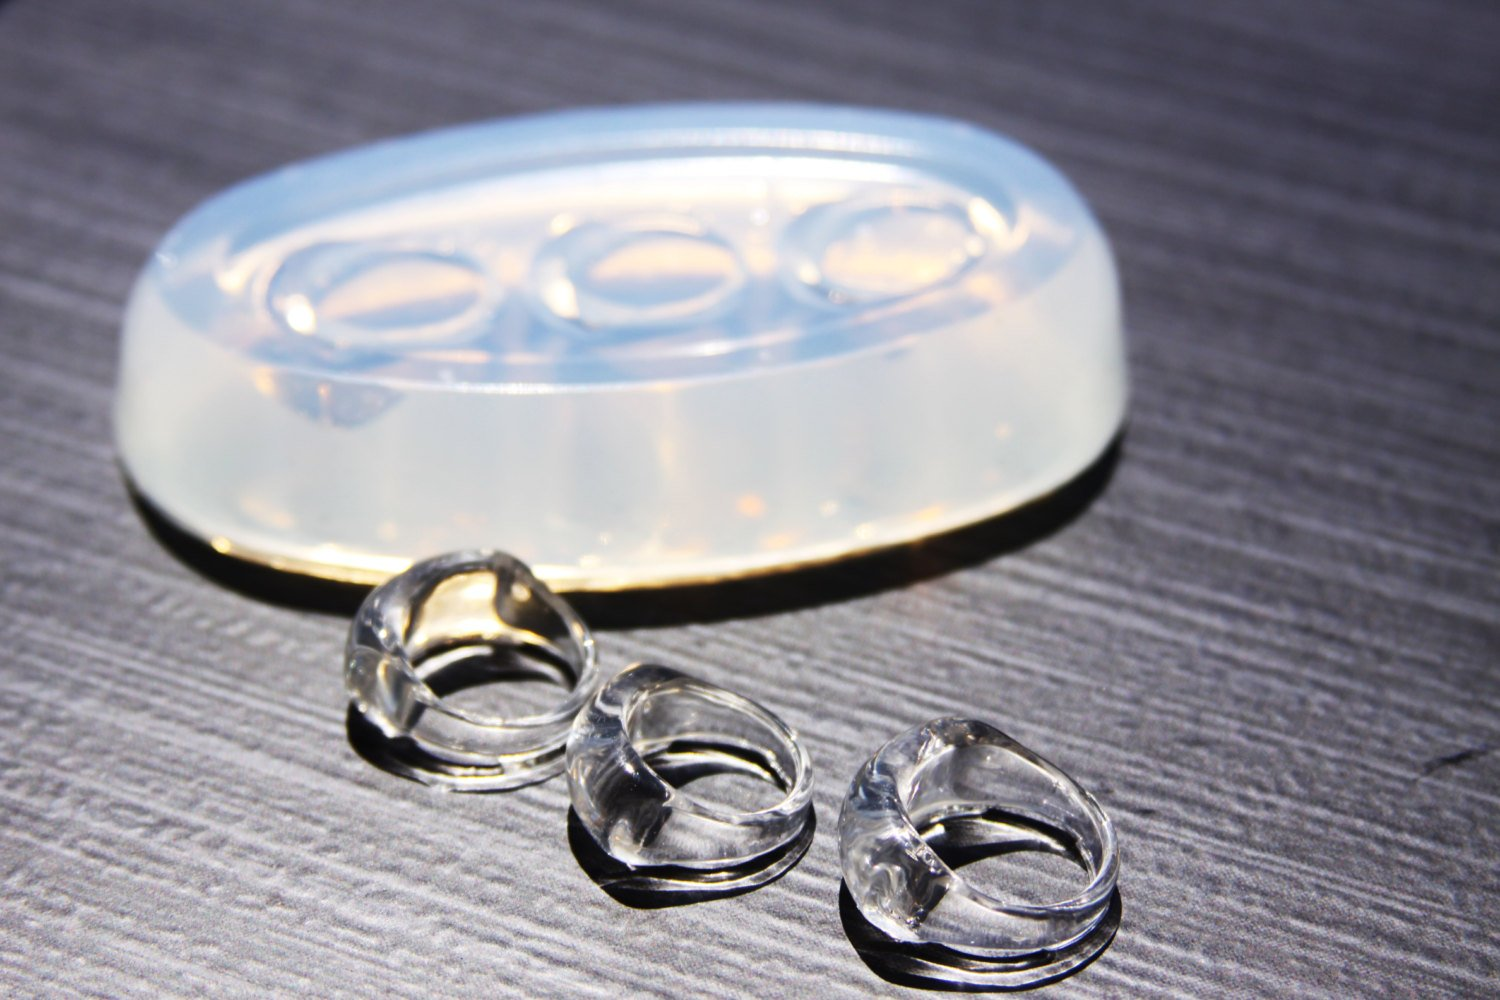 Free USA Shipping. Clear handmade Silicone Mold for Ring size 7.75. 1-91